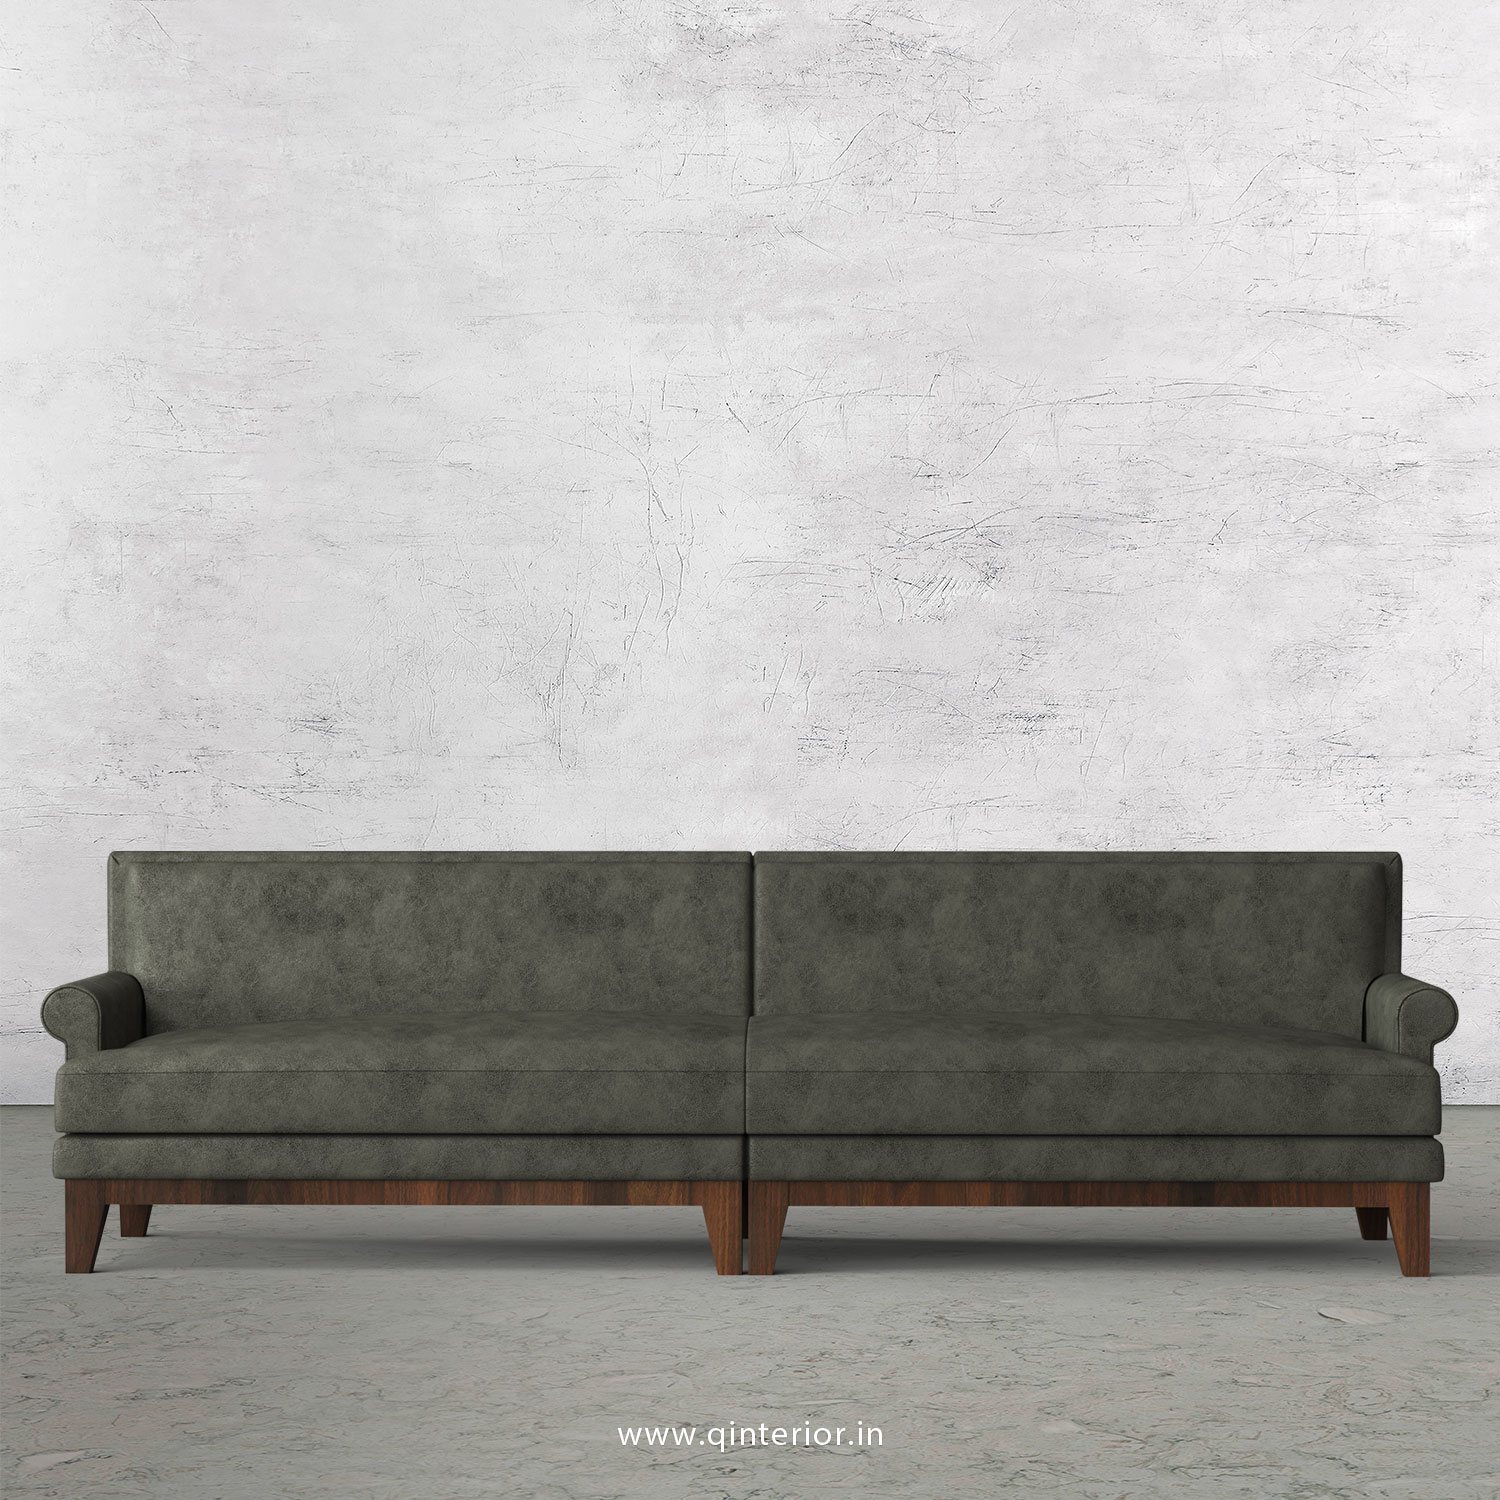 Aviana 4 Seater Sofa in Fab Leather Fabric - SFA001 FL07